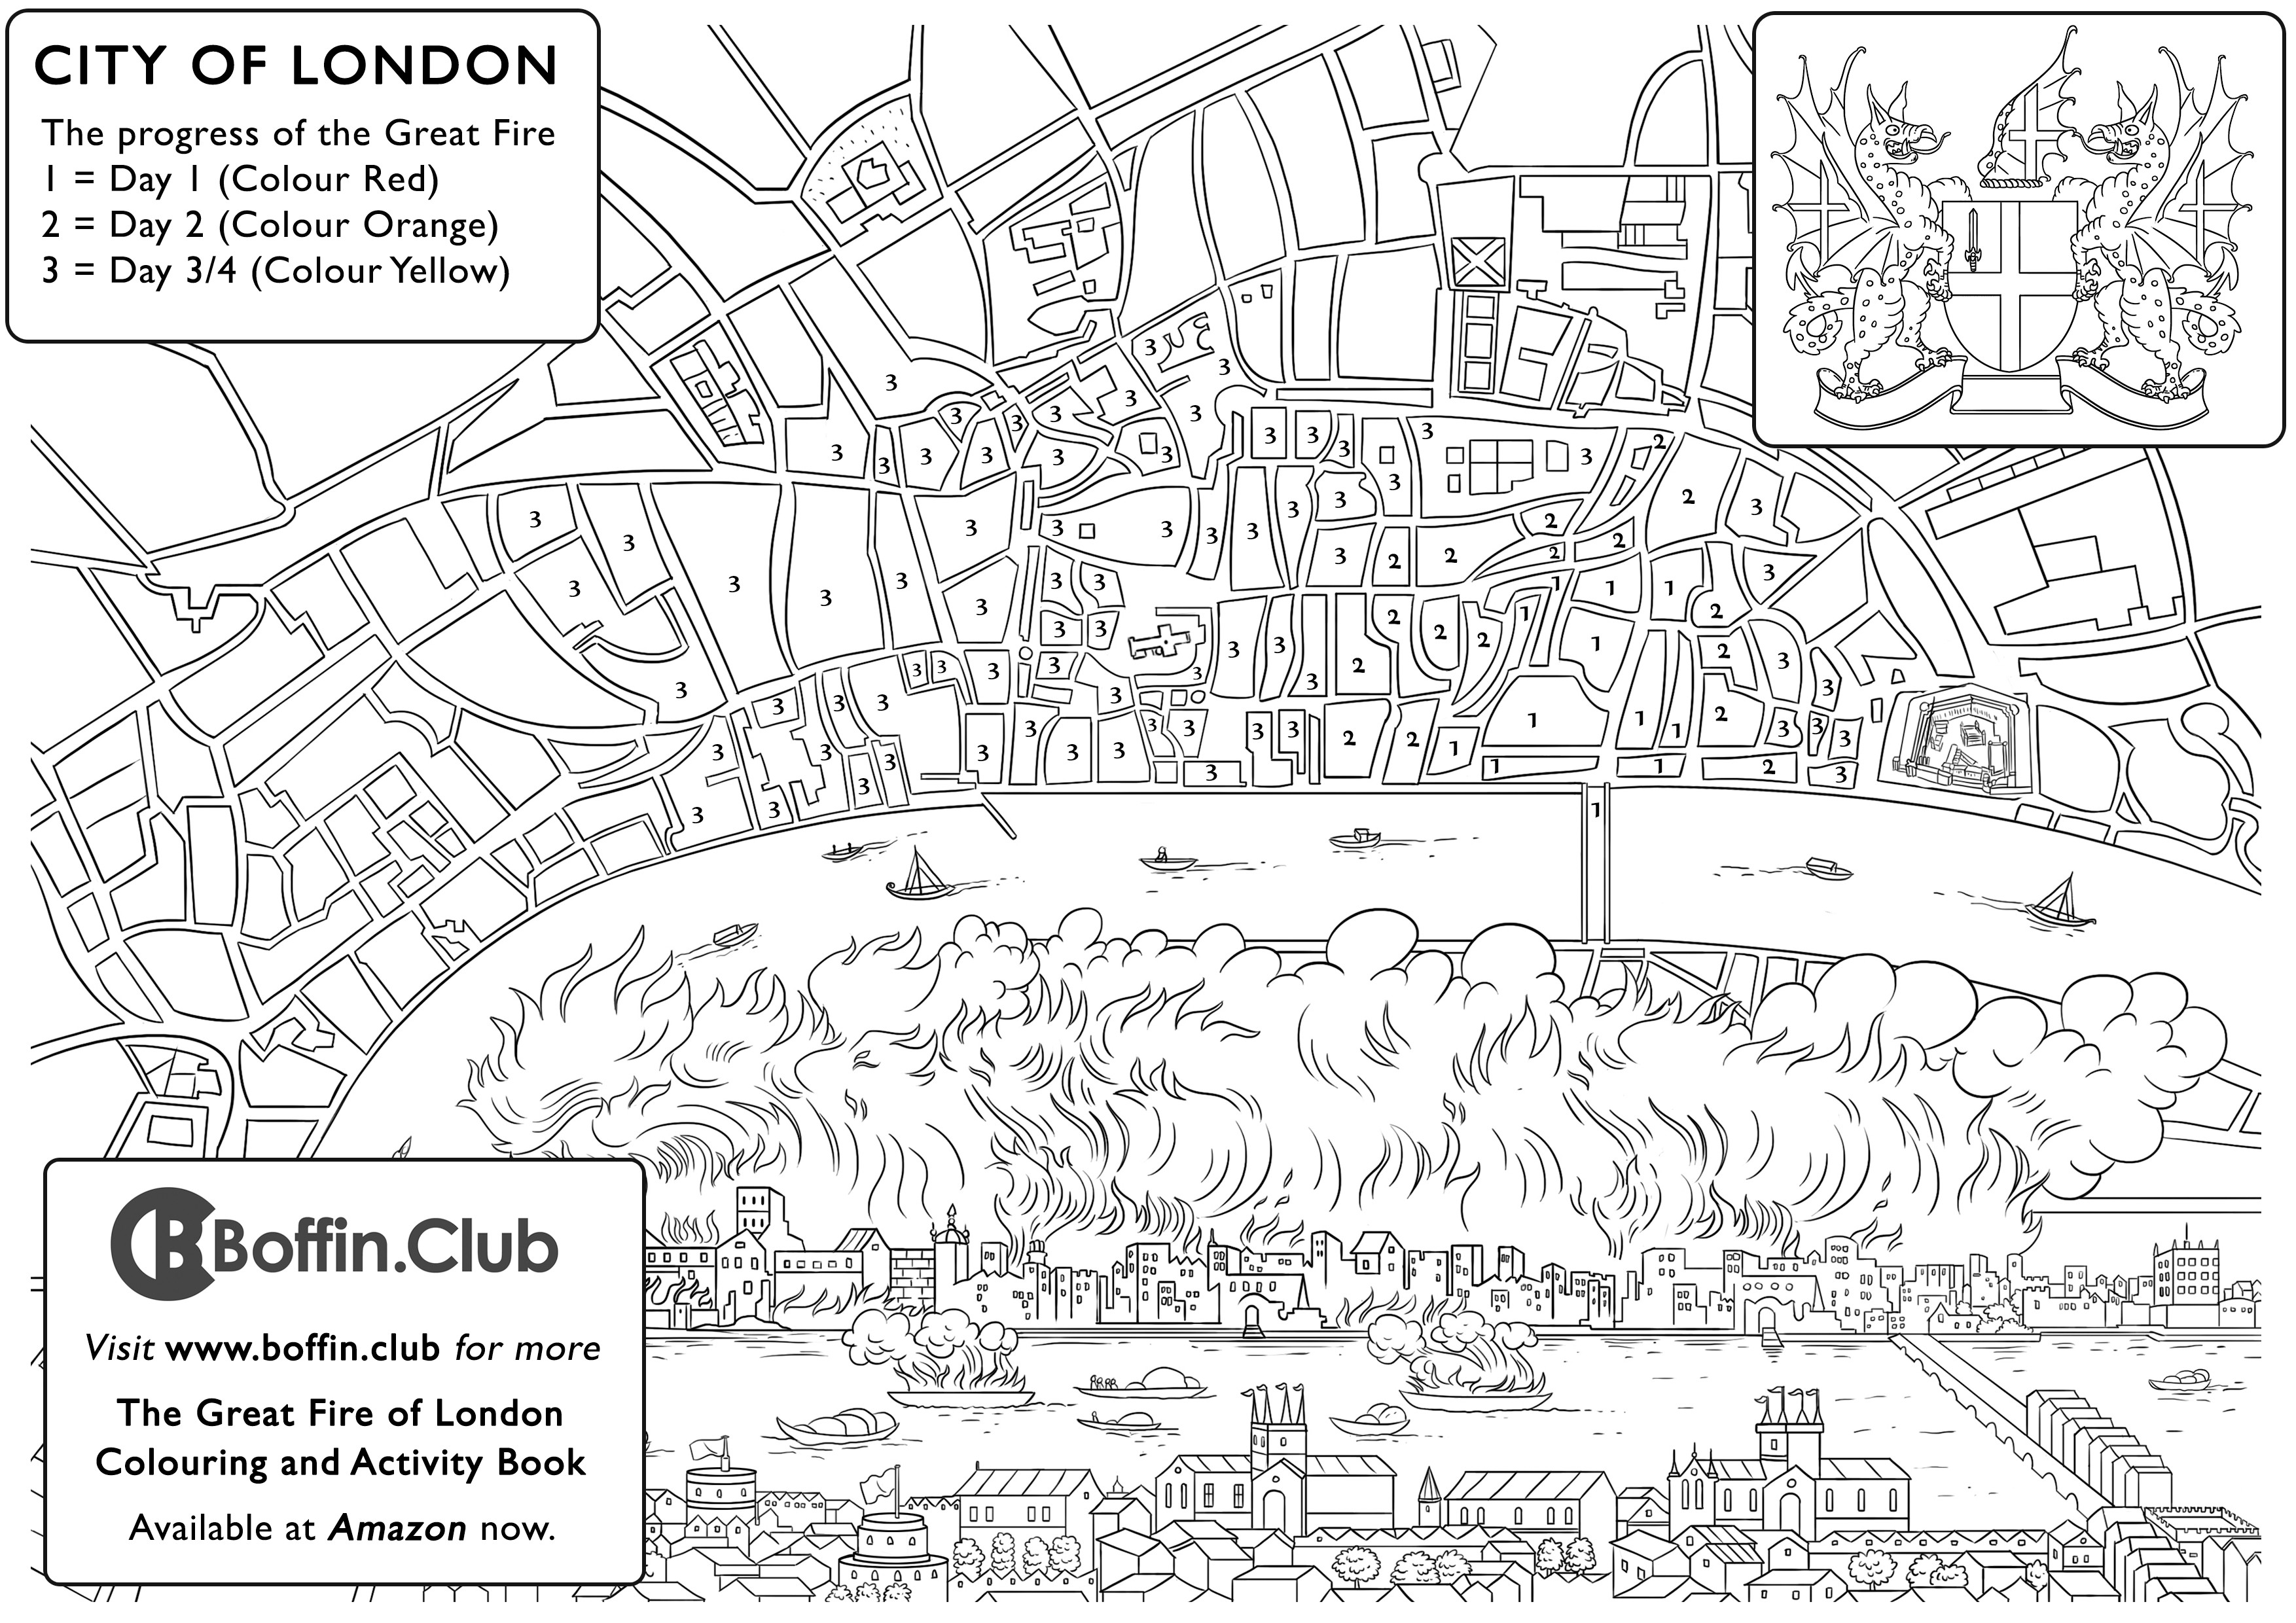 There Are Many Activities To Do In The Great Fire Of London Colouring And Activity Book Youll Find Them Contained Within Key Facts Cover Pages